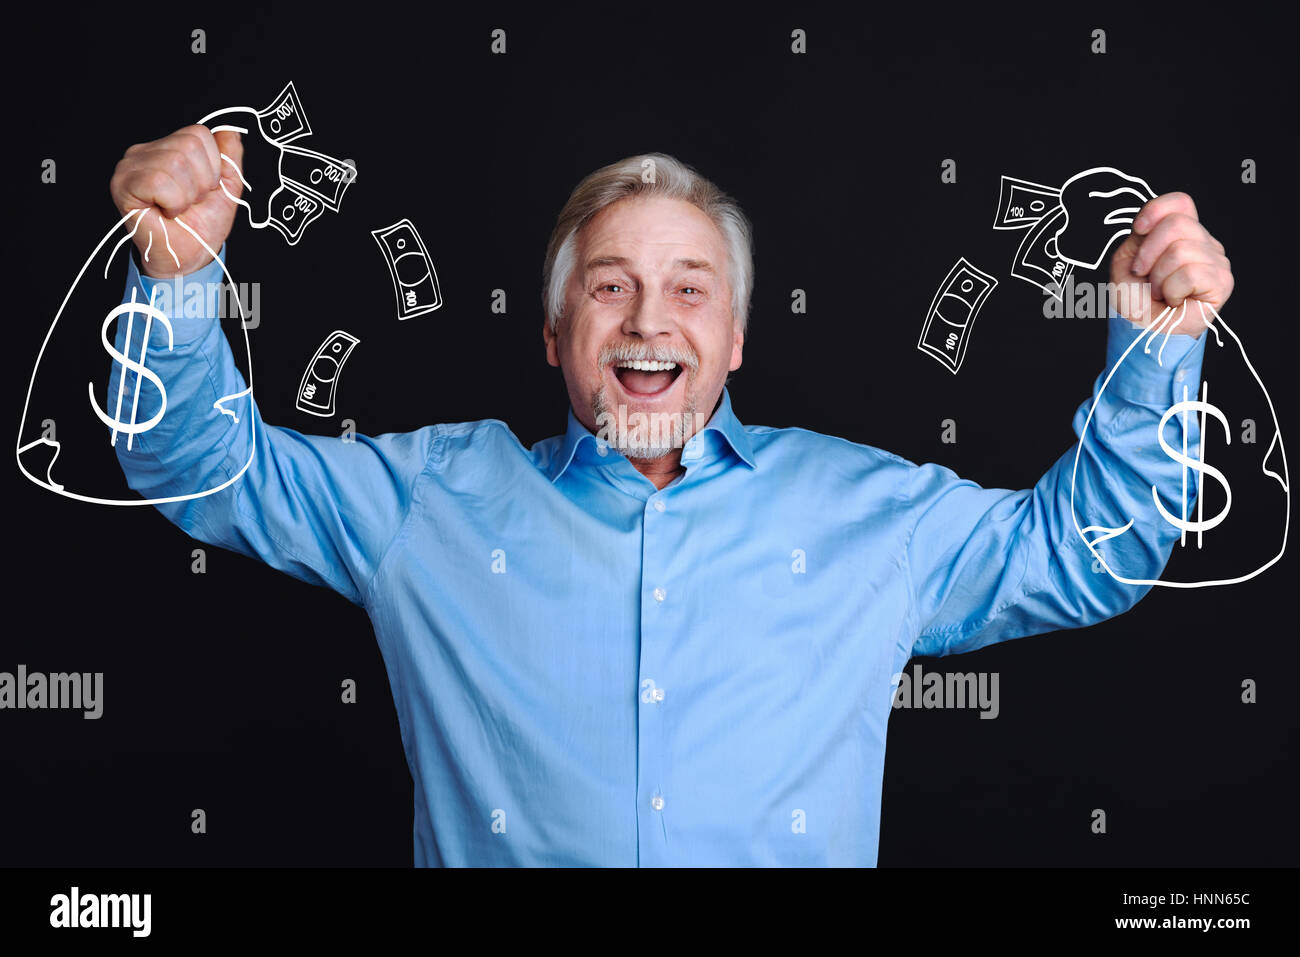 Delighted positive man standing against the black background - Stock Image